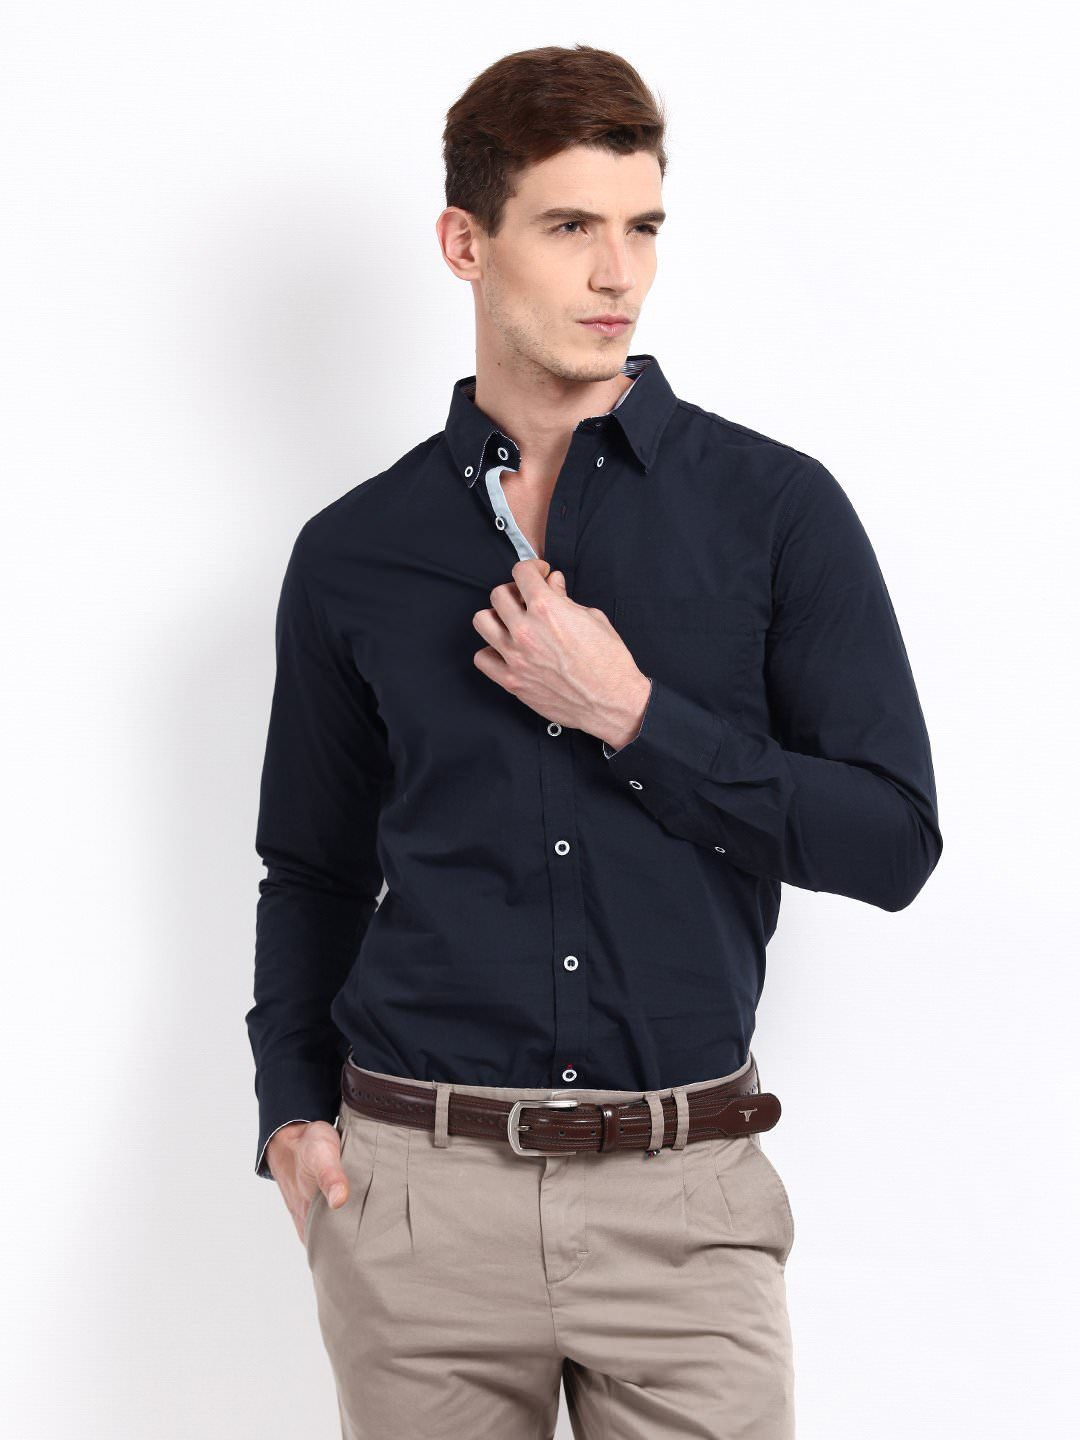 Dress code for smart casual smart casual dress code for men pictures - Smart Casual Dress Code